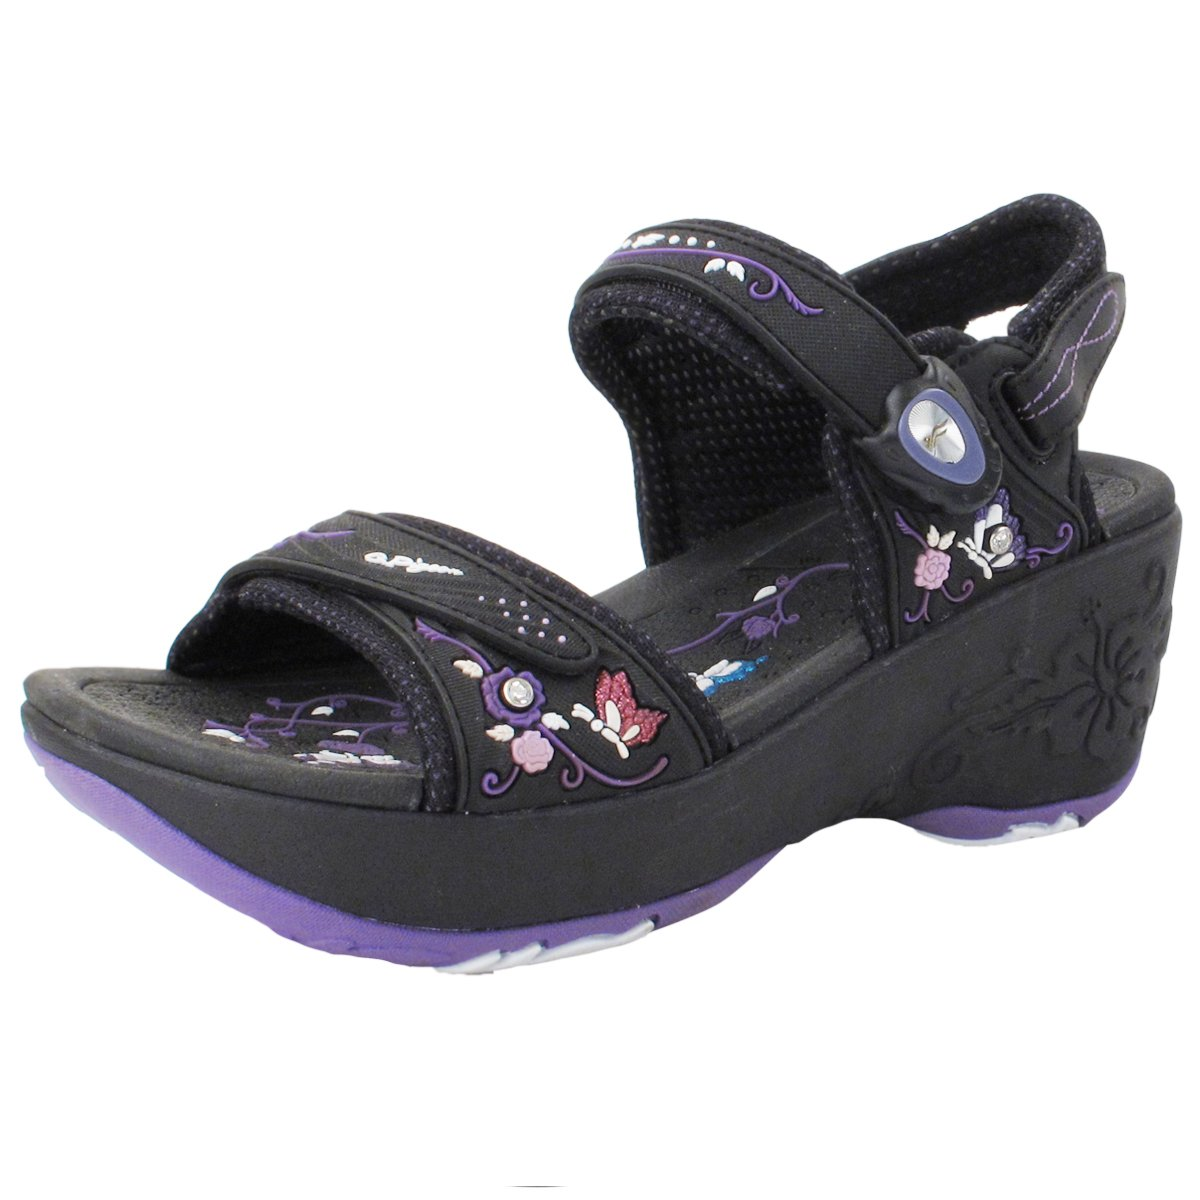 Gold Easy Pigeon GP5974W (Size 4.5-8) Easy Gold Magnetic Snap Lock Closure Light Weight Comfort Platform Sandals (Size 4.5-8) B0794JGWLB EU38: US 7|Black Purple 75f7e9